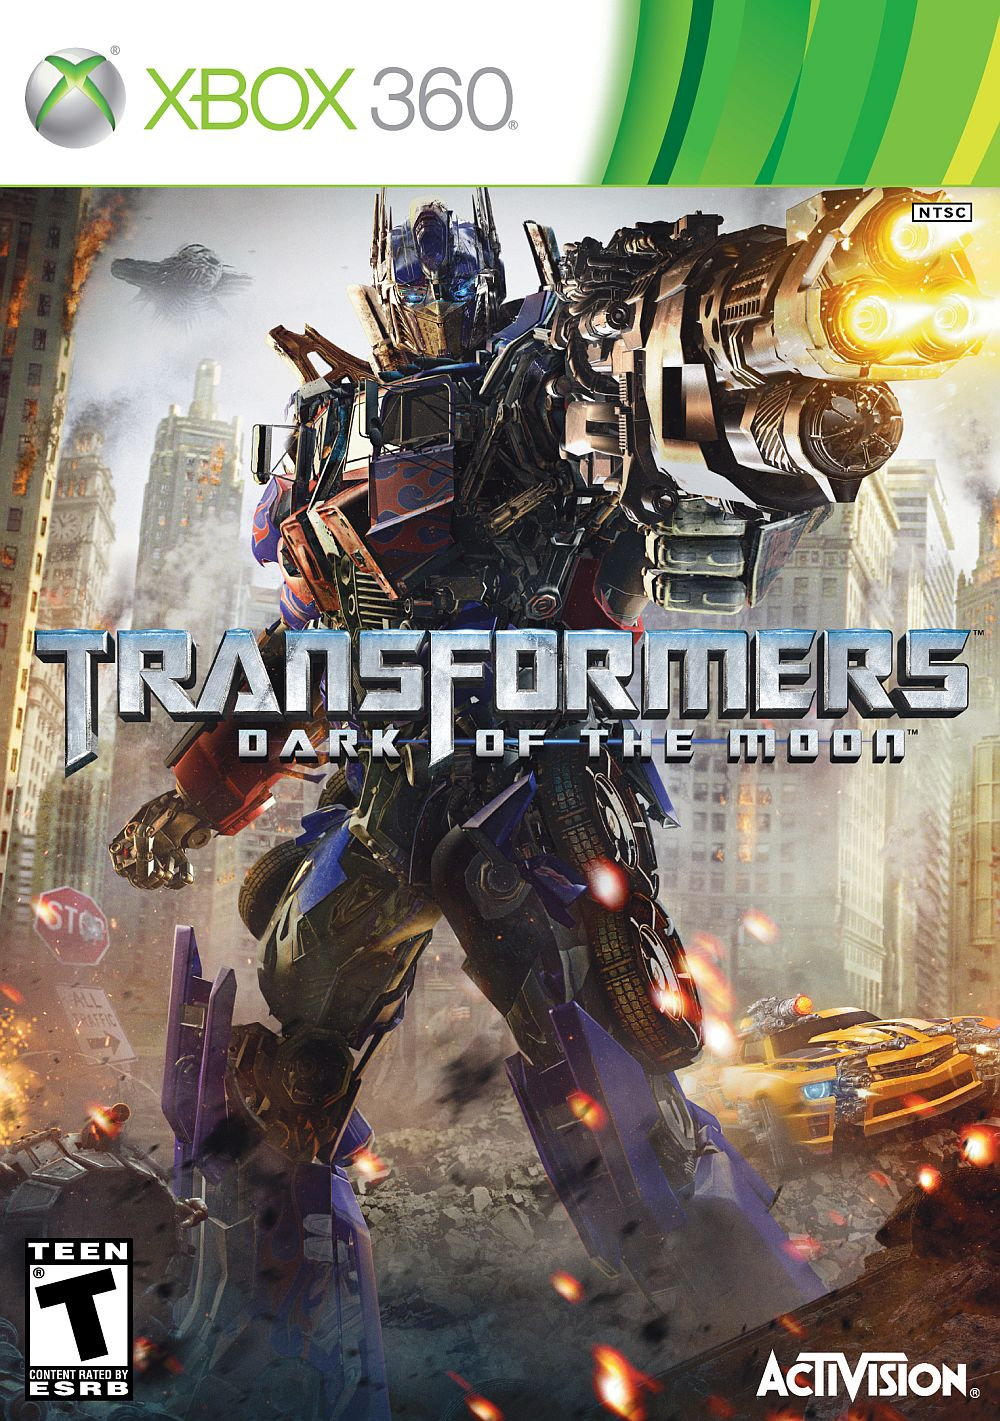 List Of Transformers >> X360 Transformers: Dark of the Moon Xbox 360 game